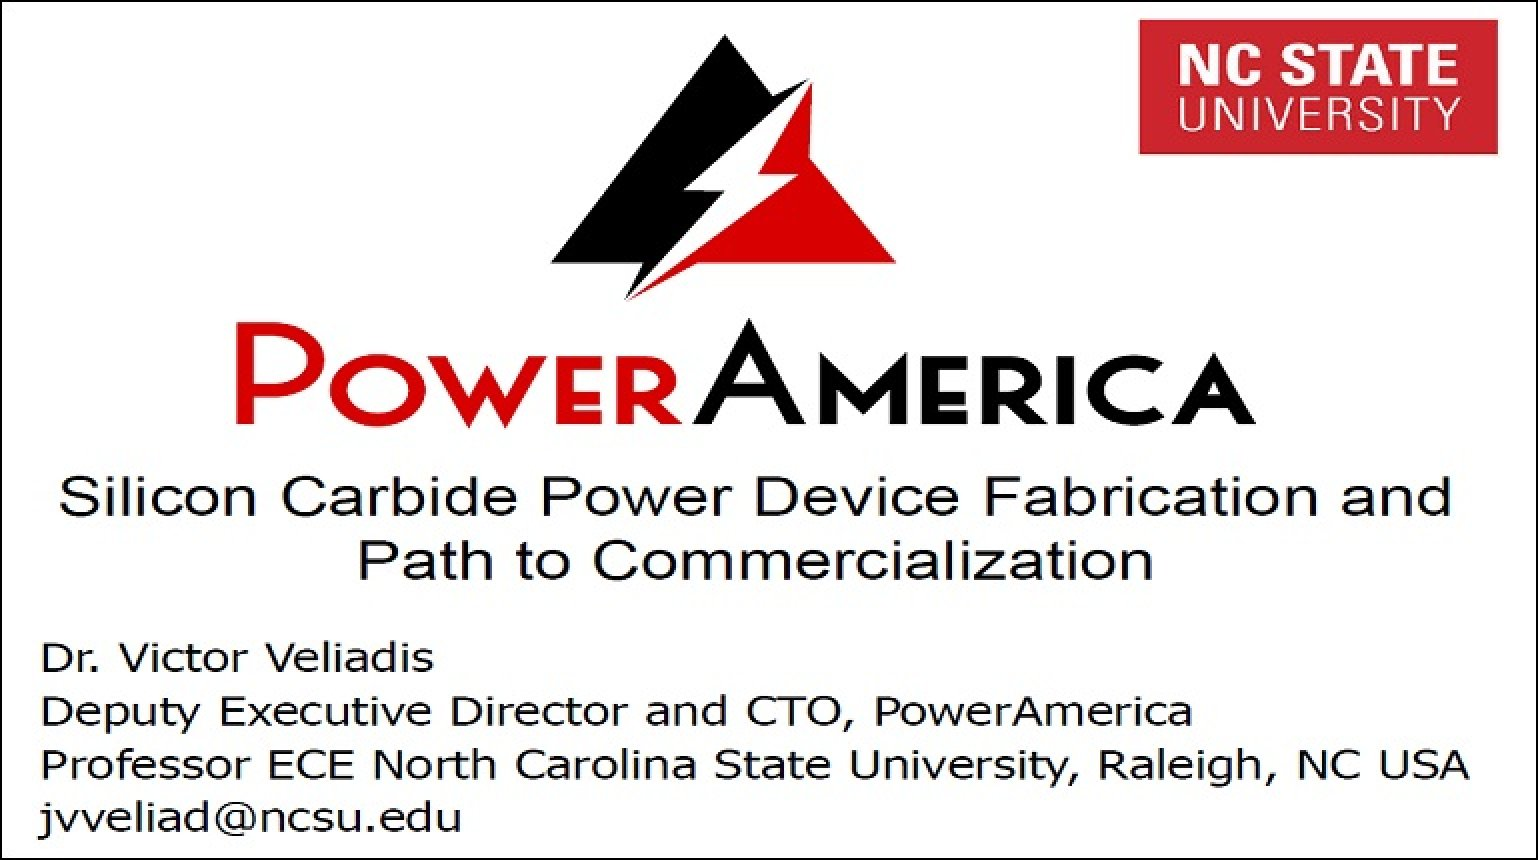 Silicon Carbide Power Device Fabrication and Path to Commercialization Video